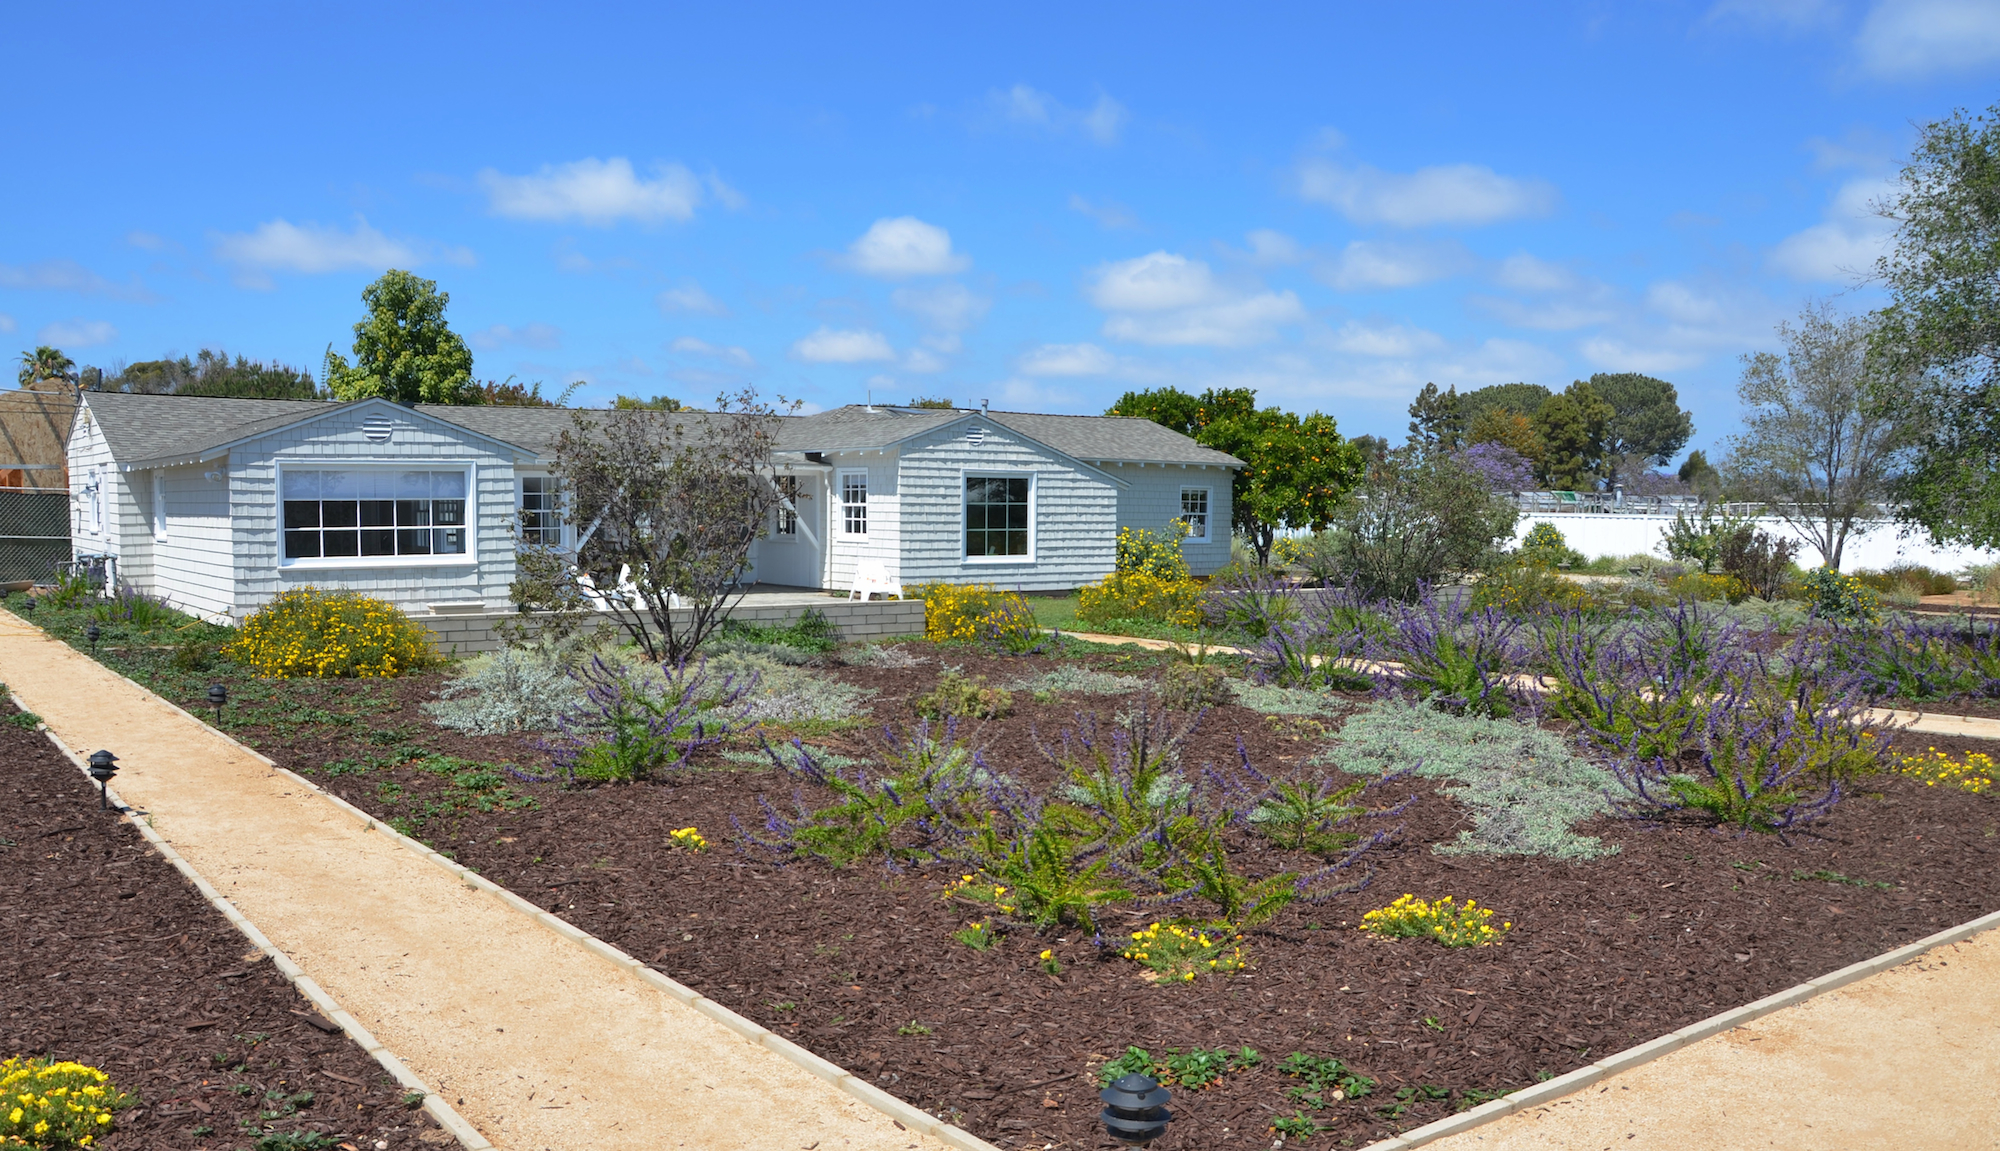 An acre of gardens for recovery.